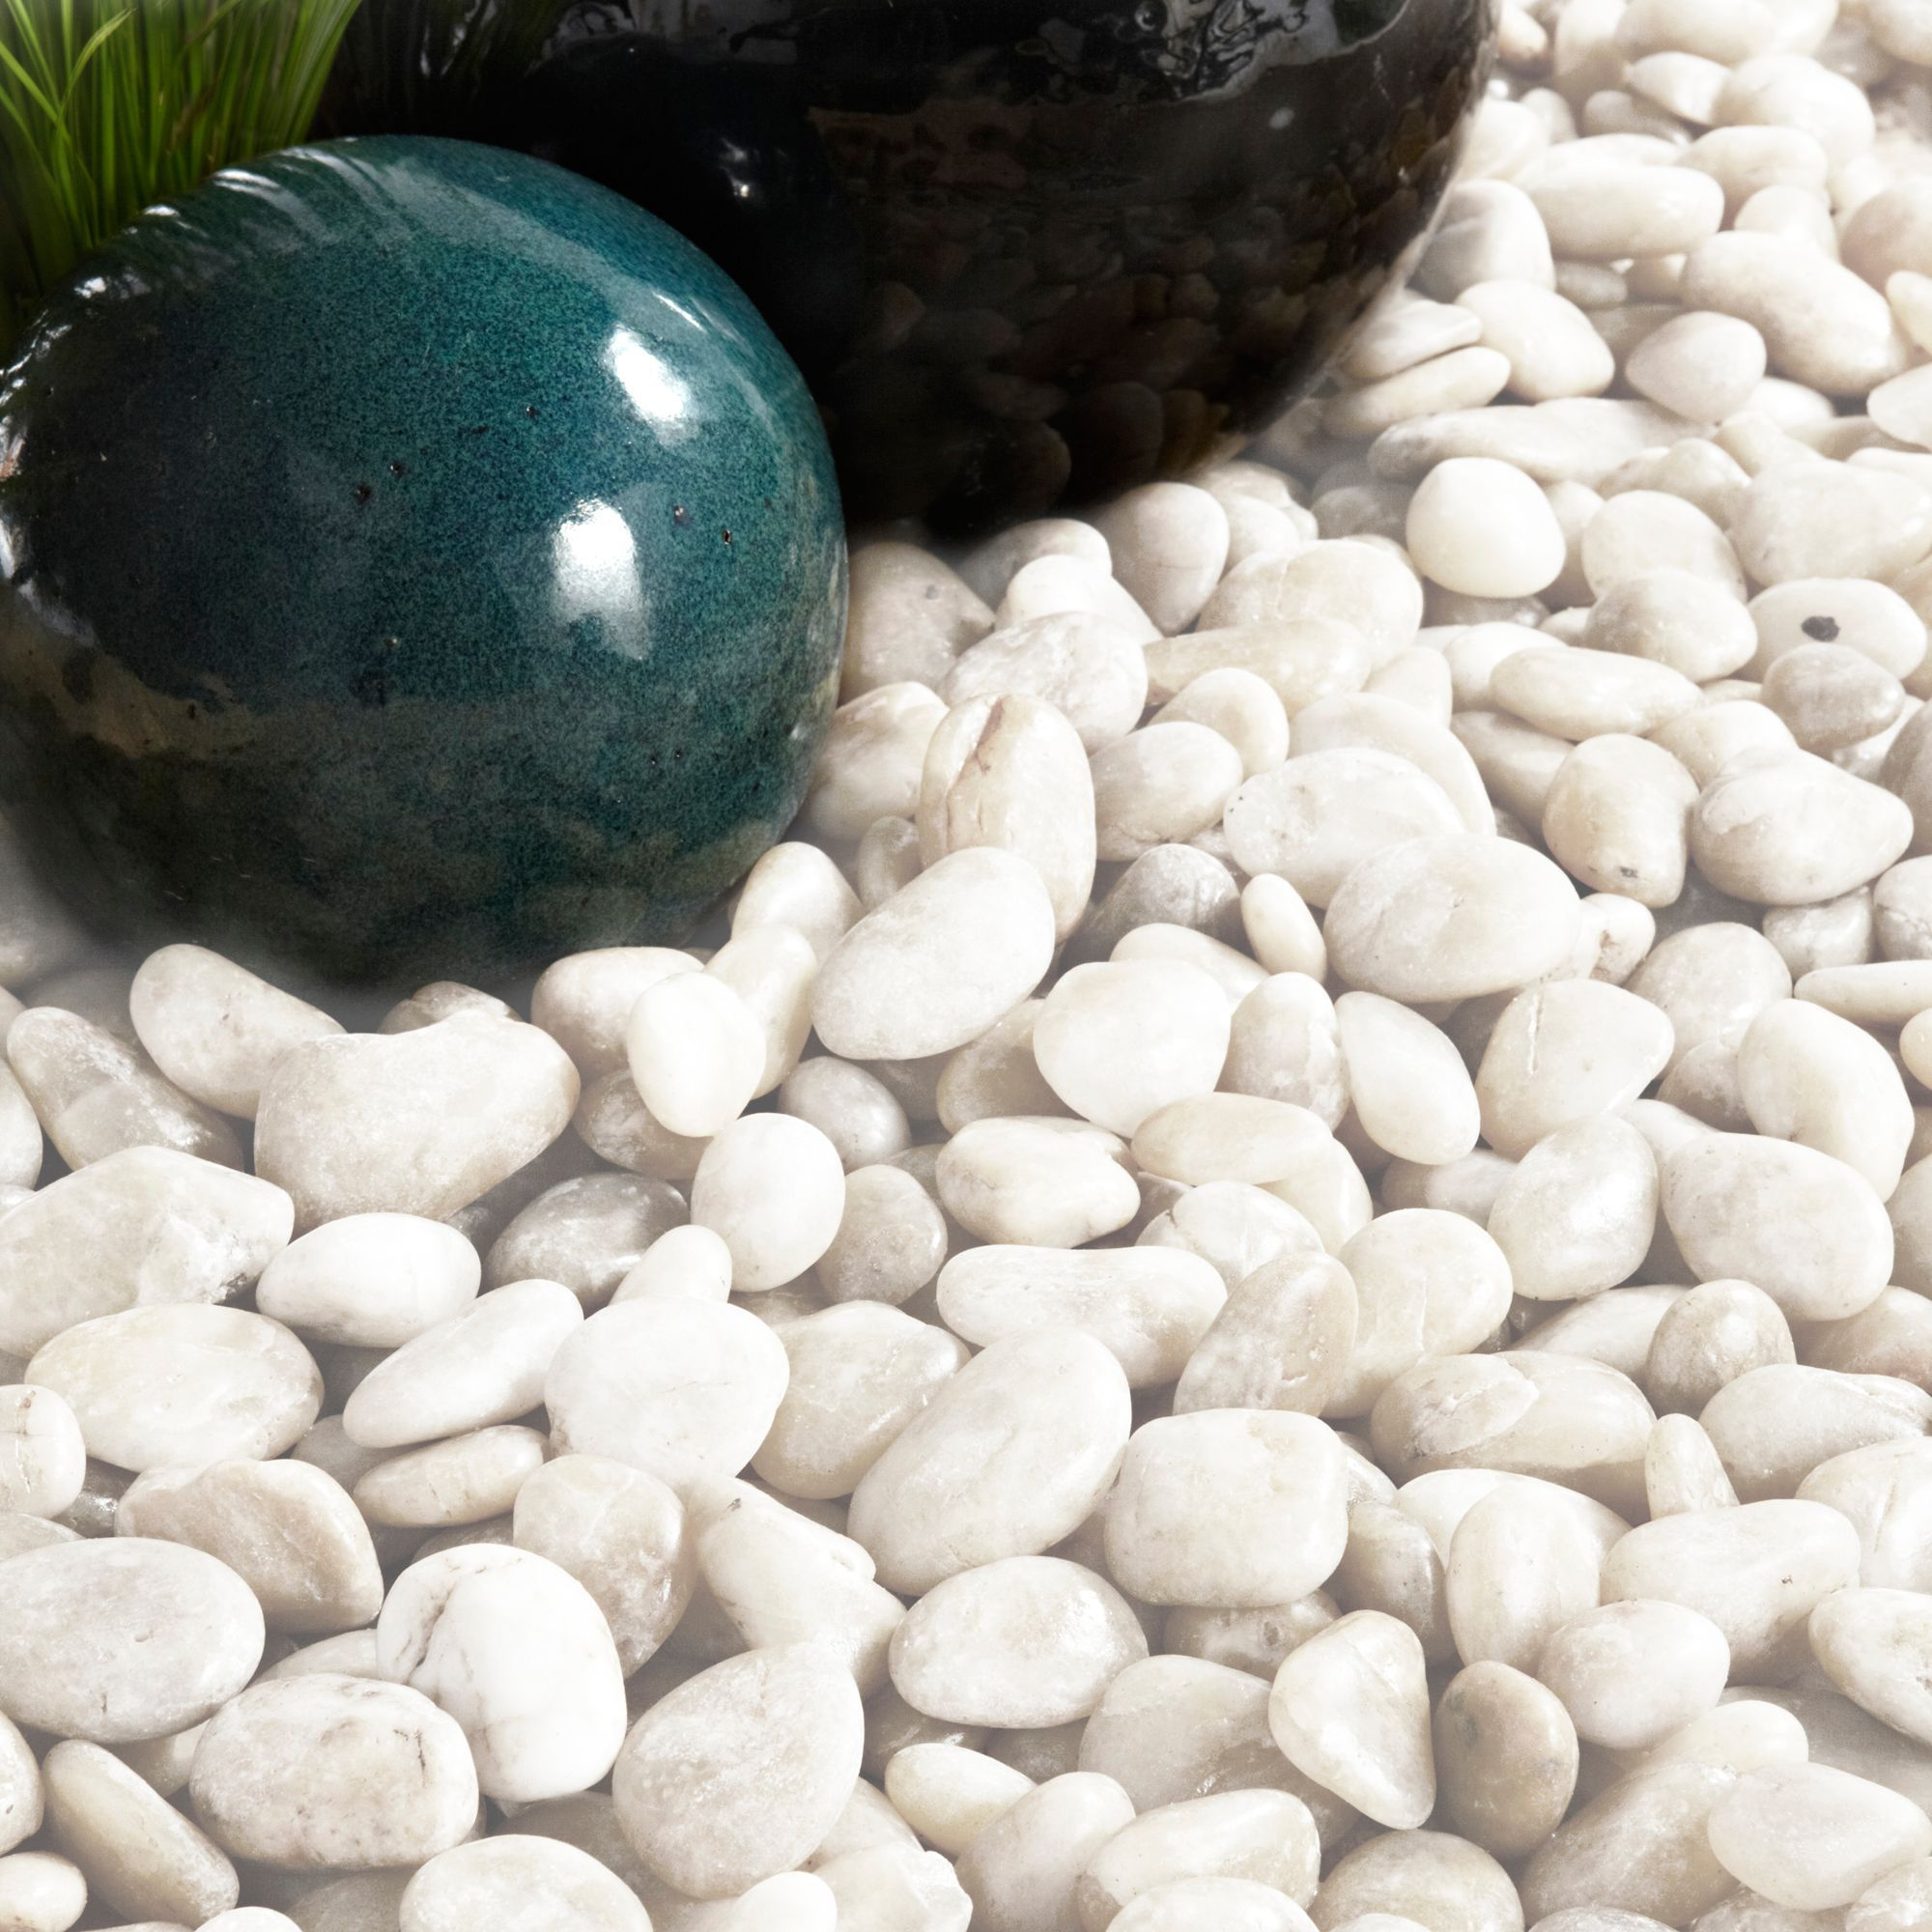 Polished White Chinese Pebbles 5kg Departments Diy At B Amp Q